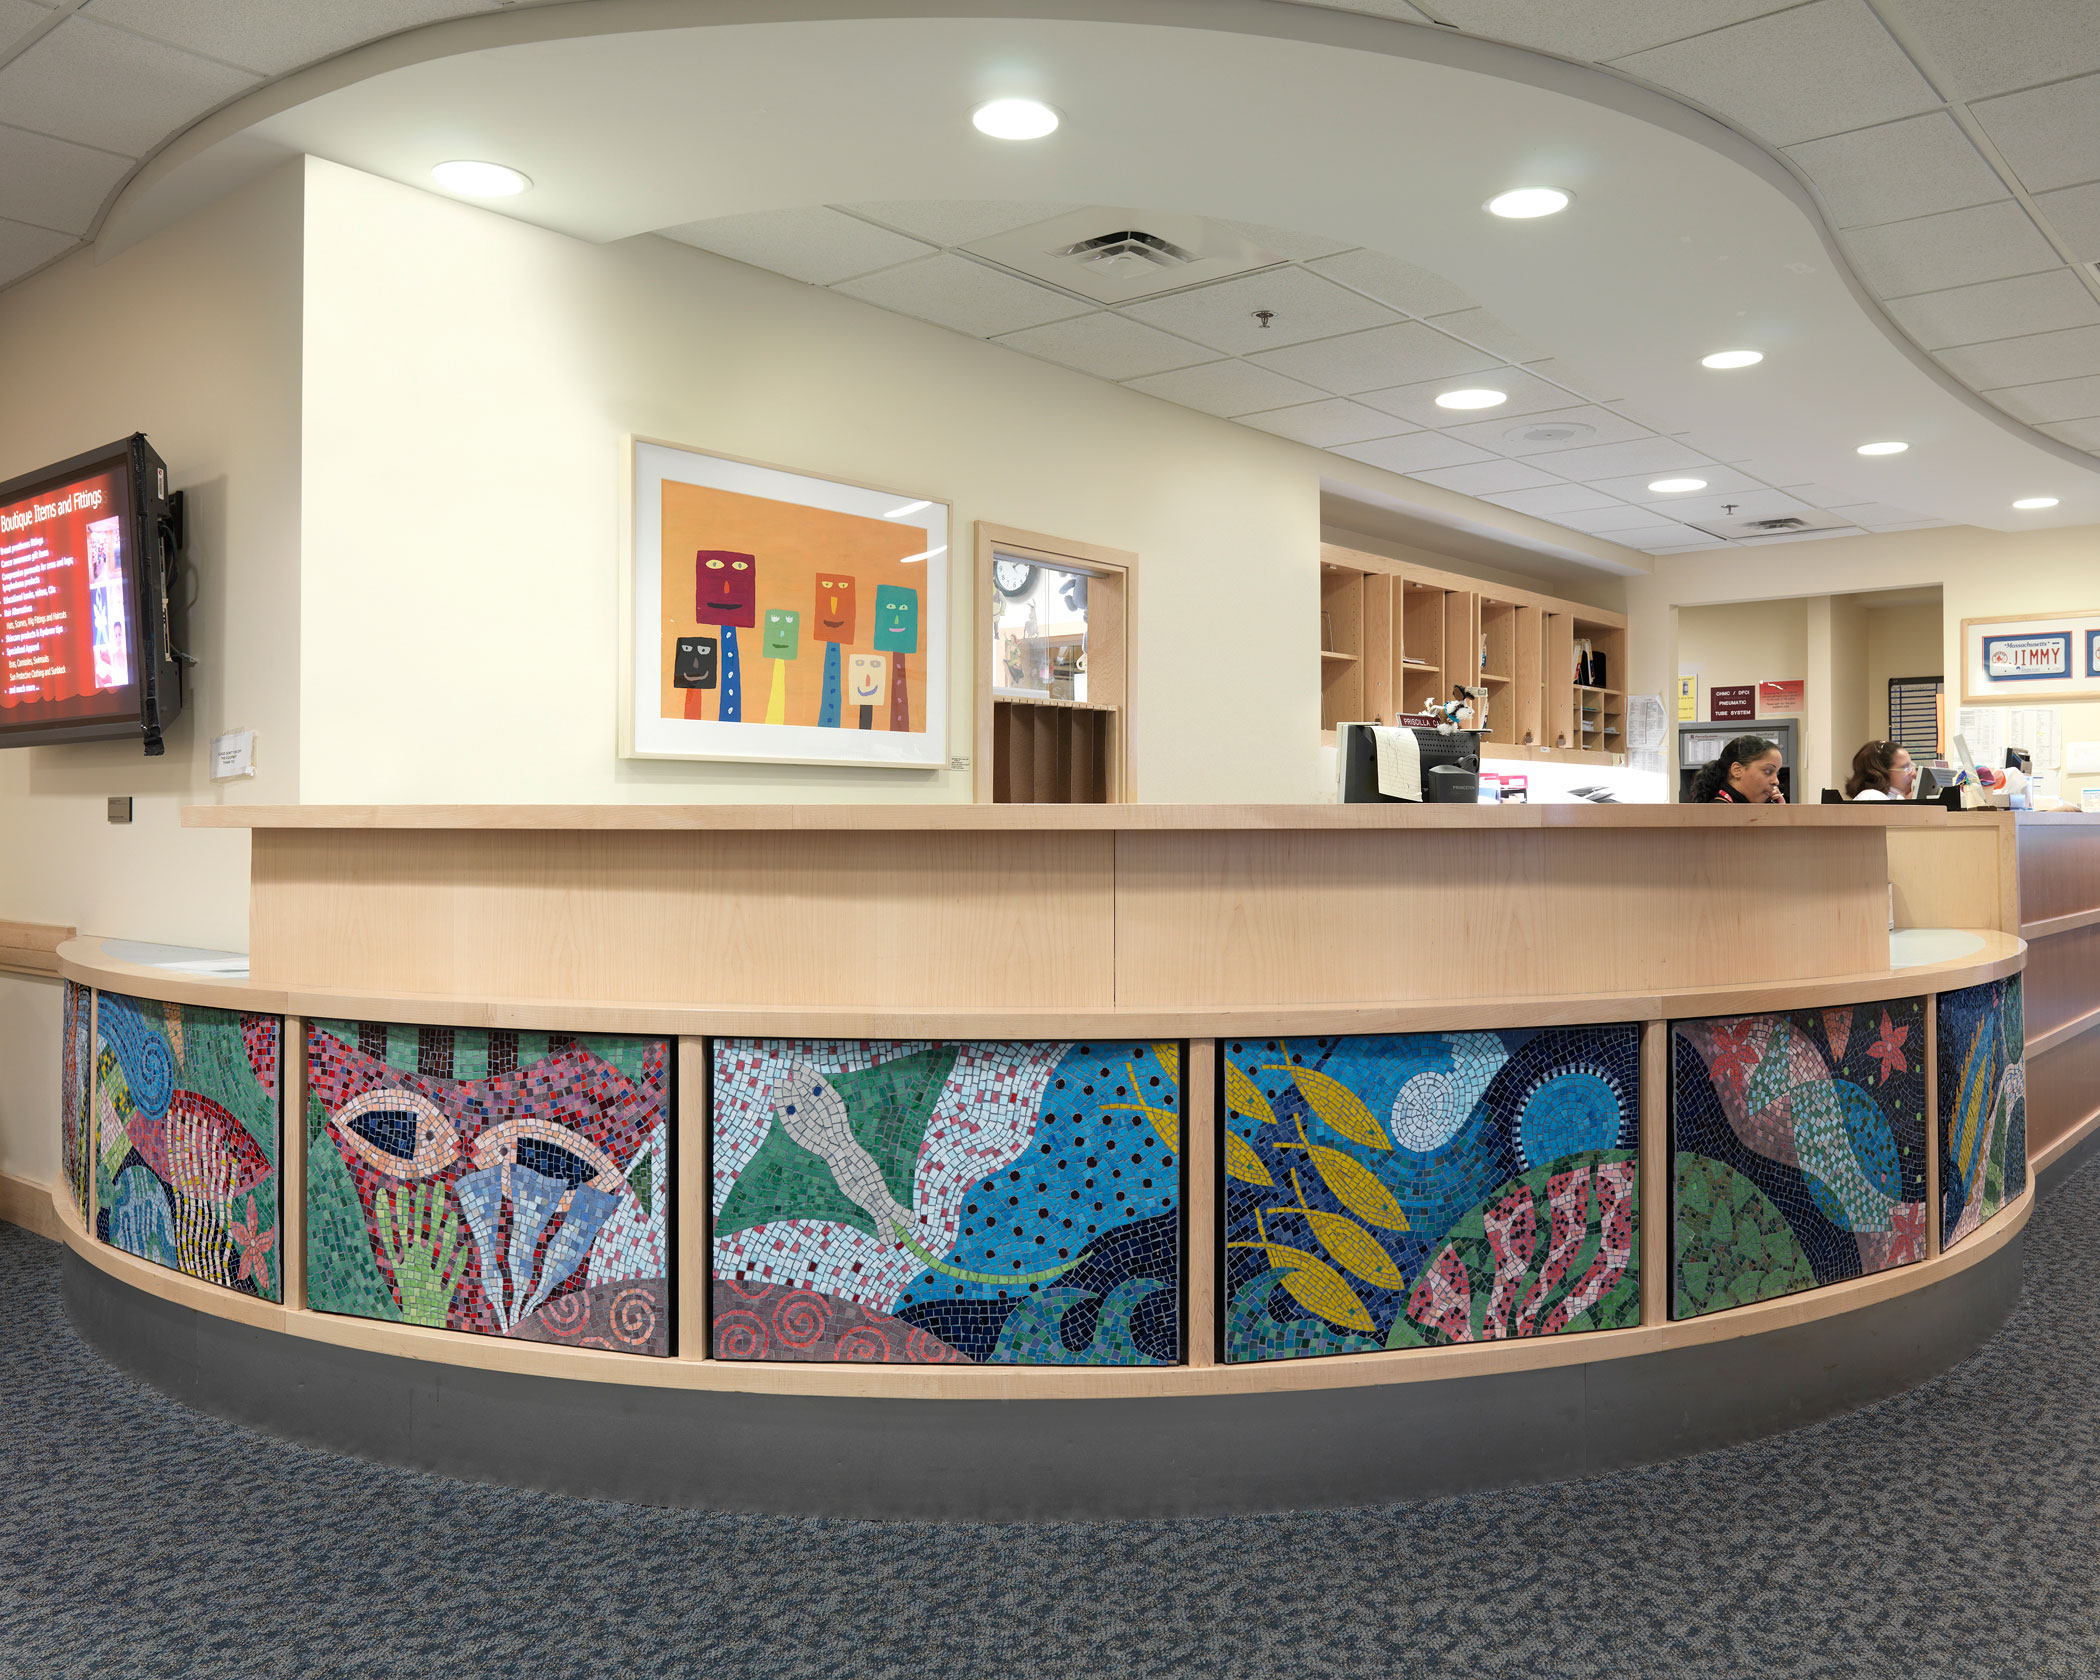 A Watery World, With Reef Residents mosaic